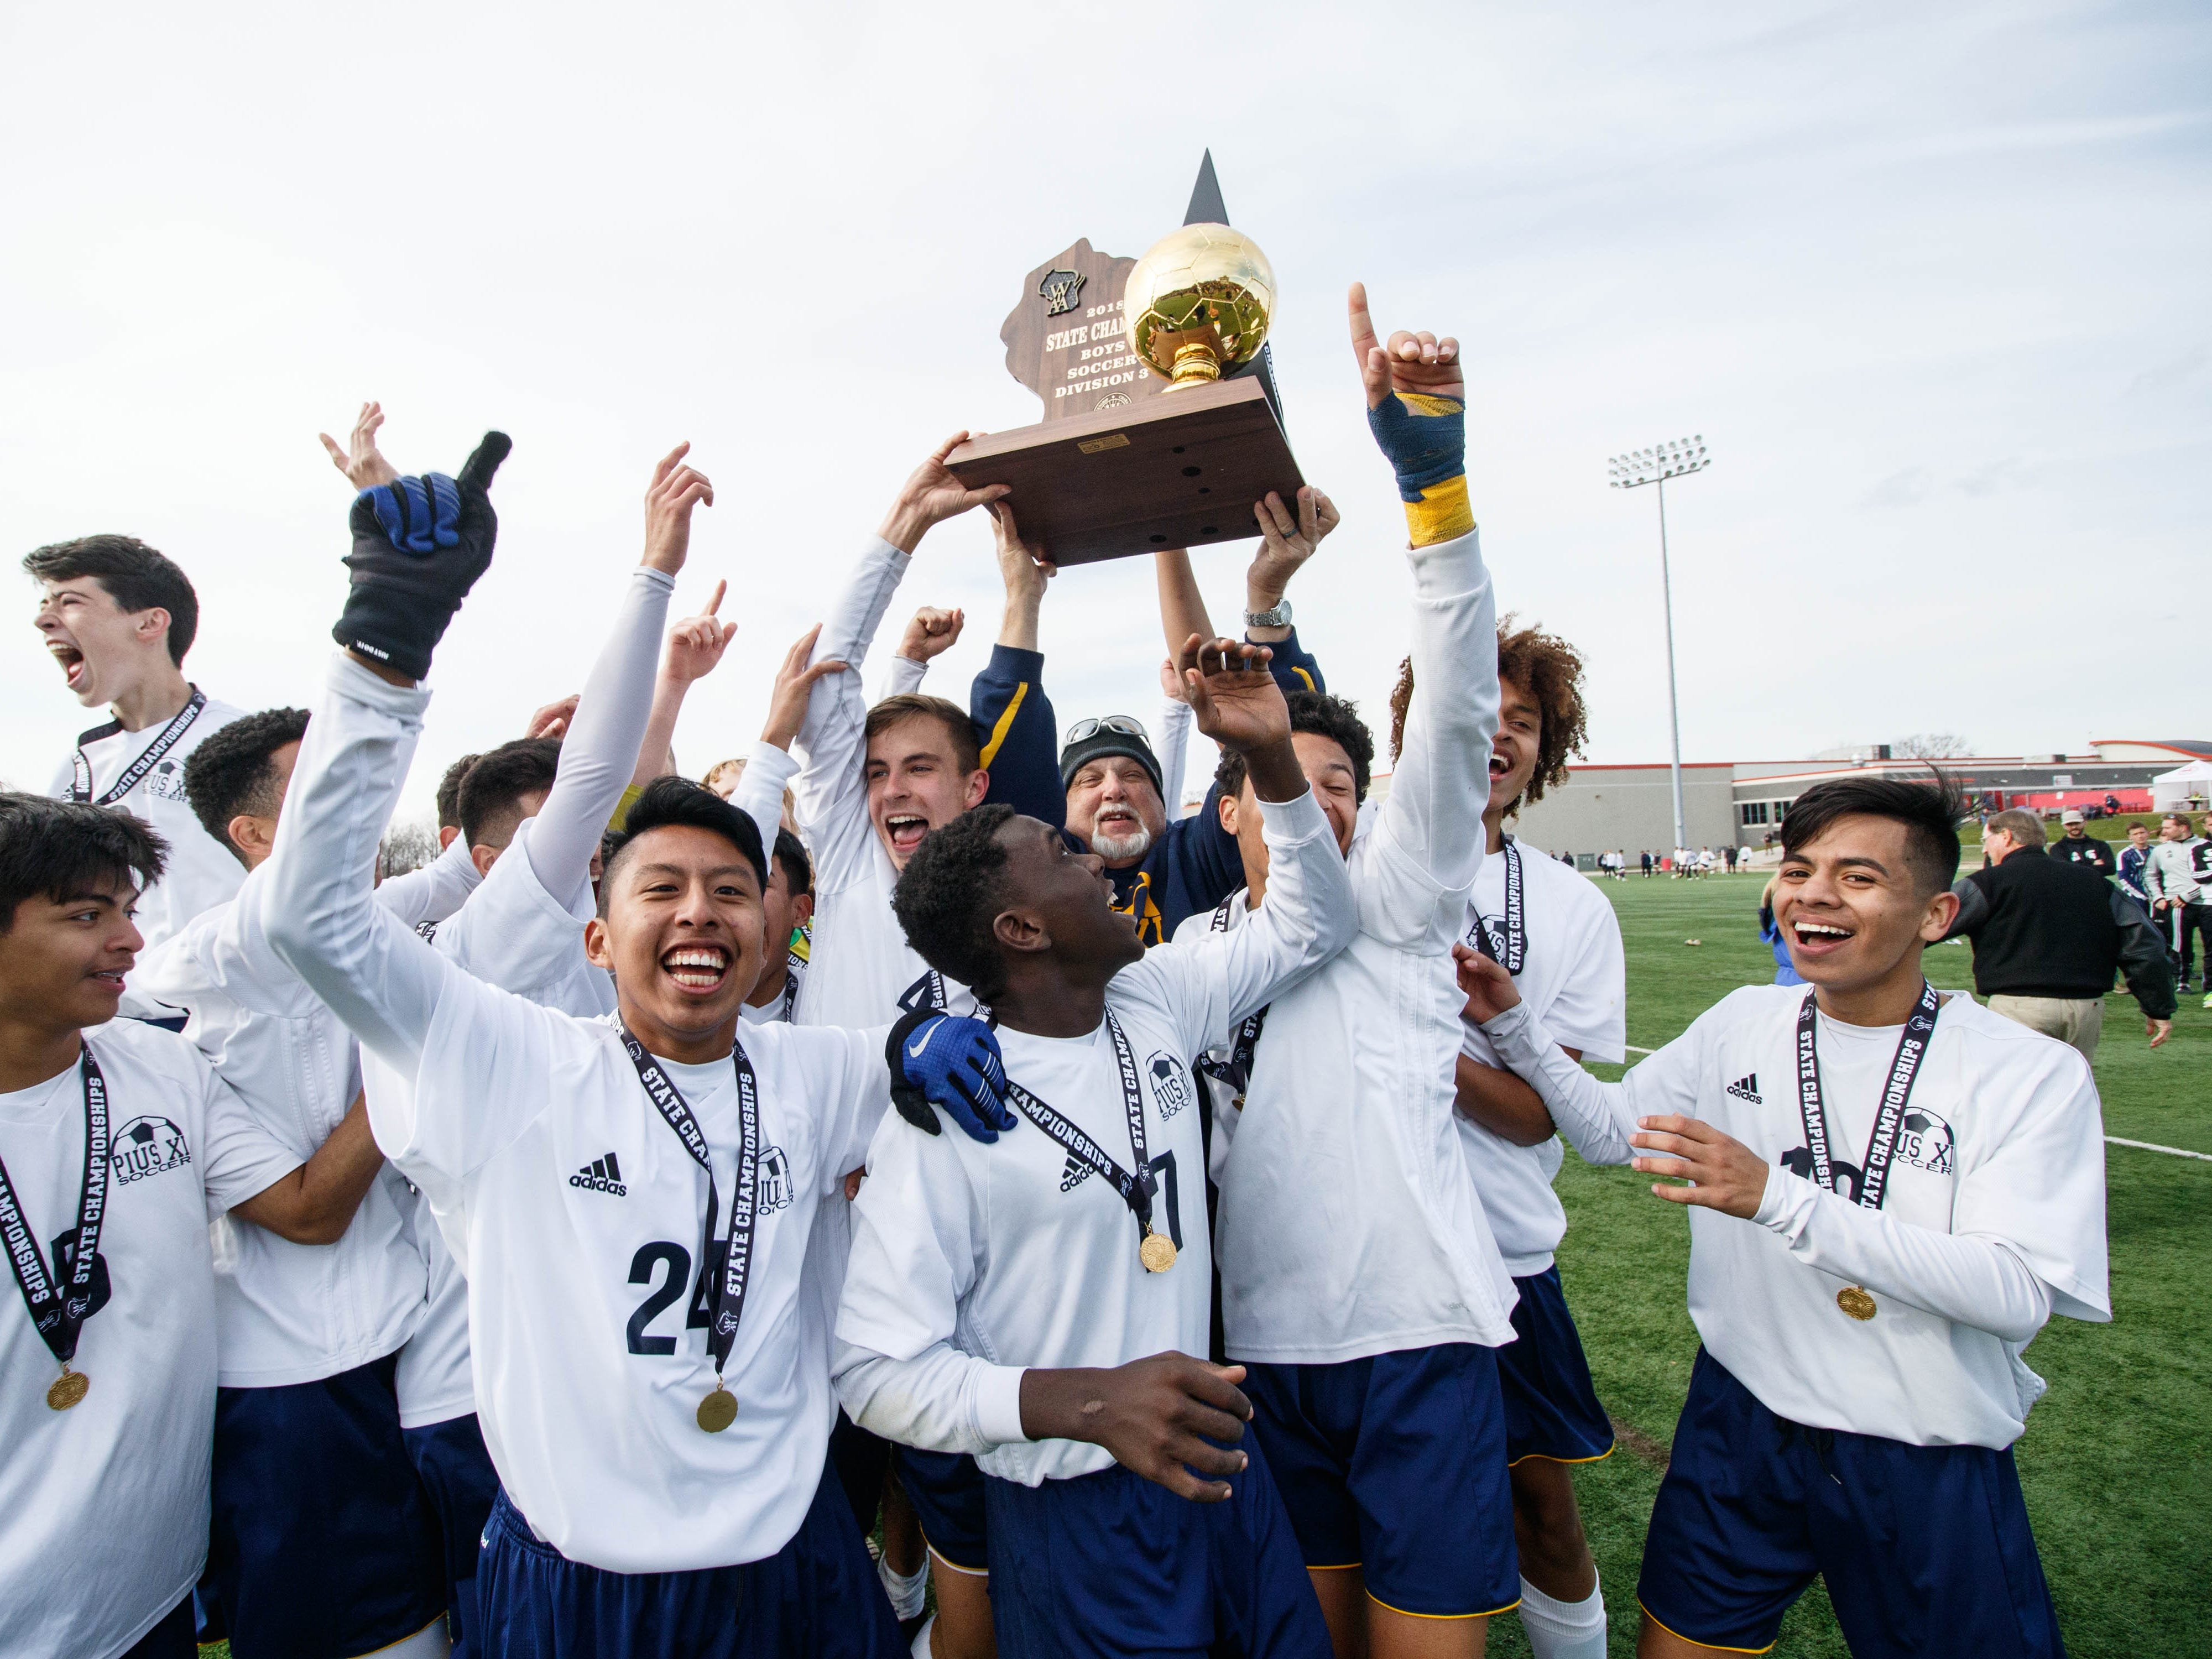 Pius XI head coach Hansi Herzog hoists the gold ball as his team celebrates winning the the WIAA Division 3 state soccer title with a 3-1 win over McFarland on Saturday at Uihlein Soccer Park in Milwaukee.